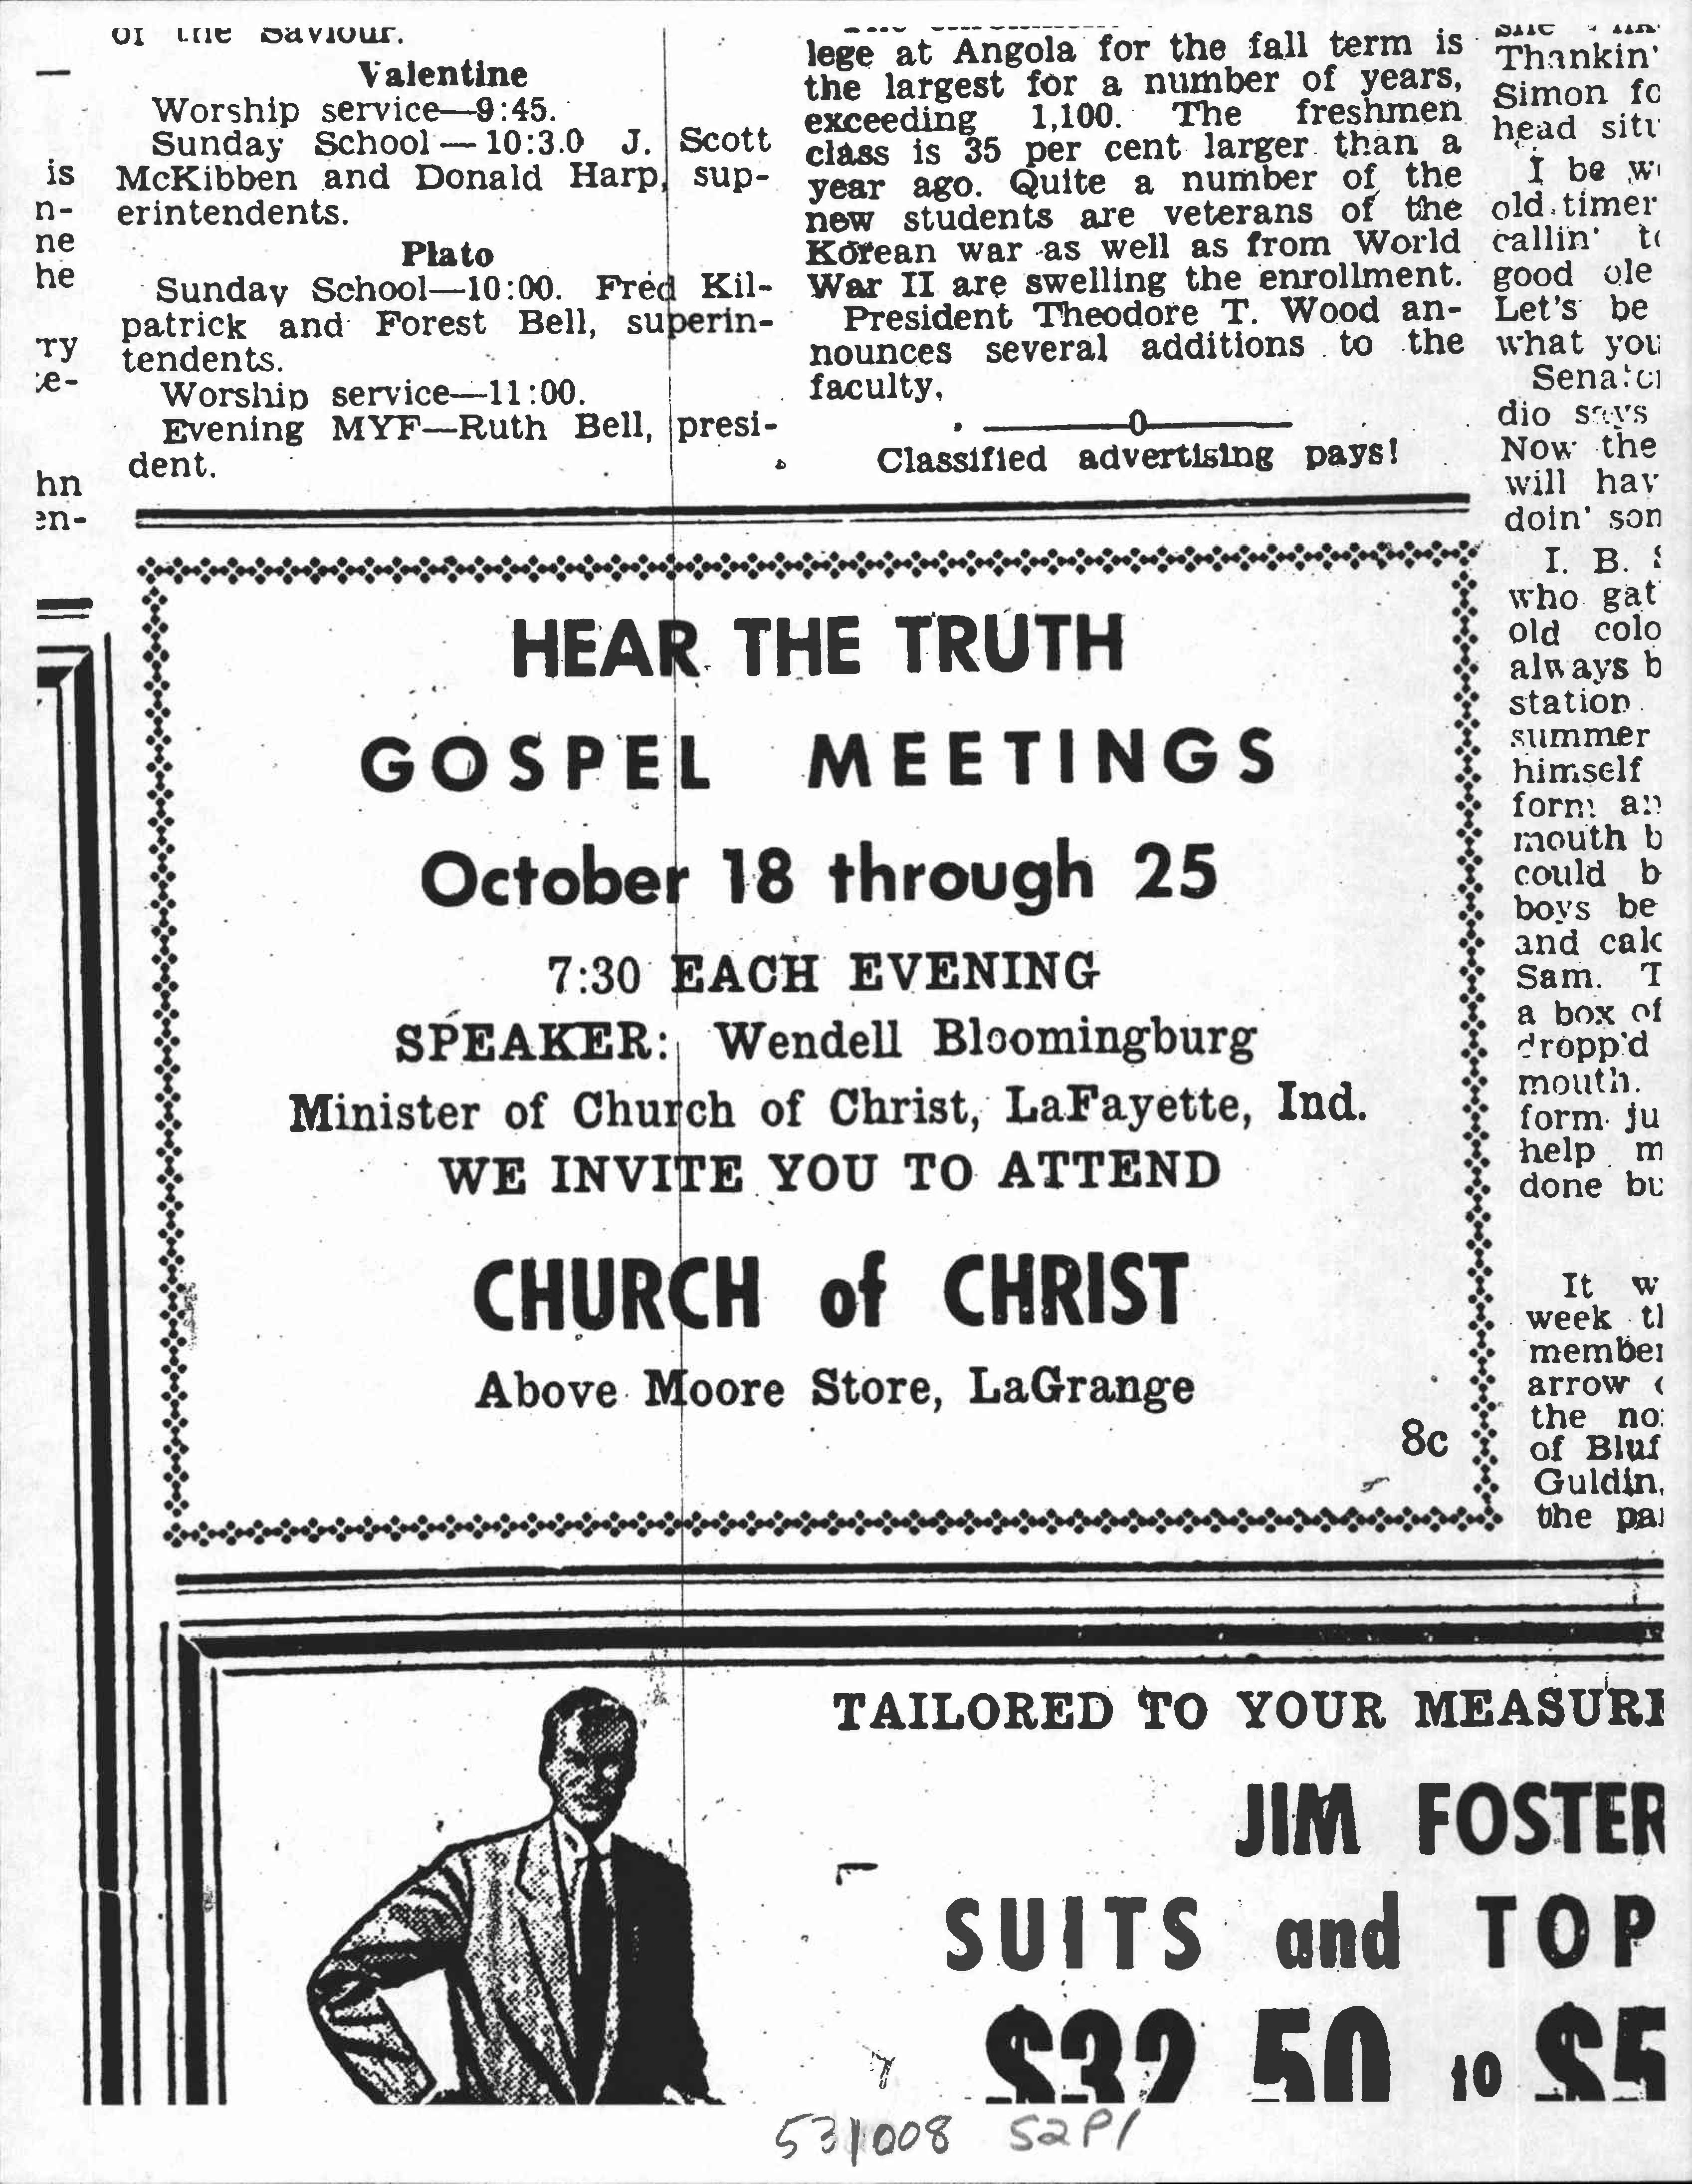 Newspaper Ads, VBS Flyers, Gospel Meeting Flyers and other